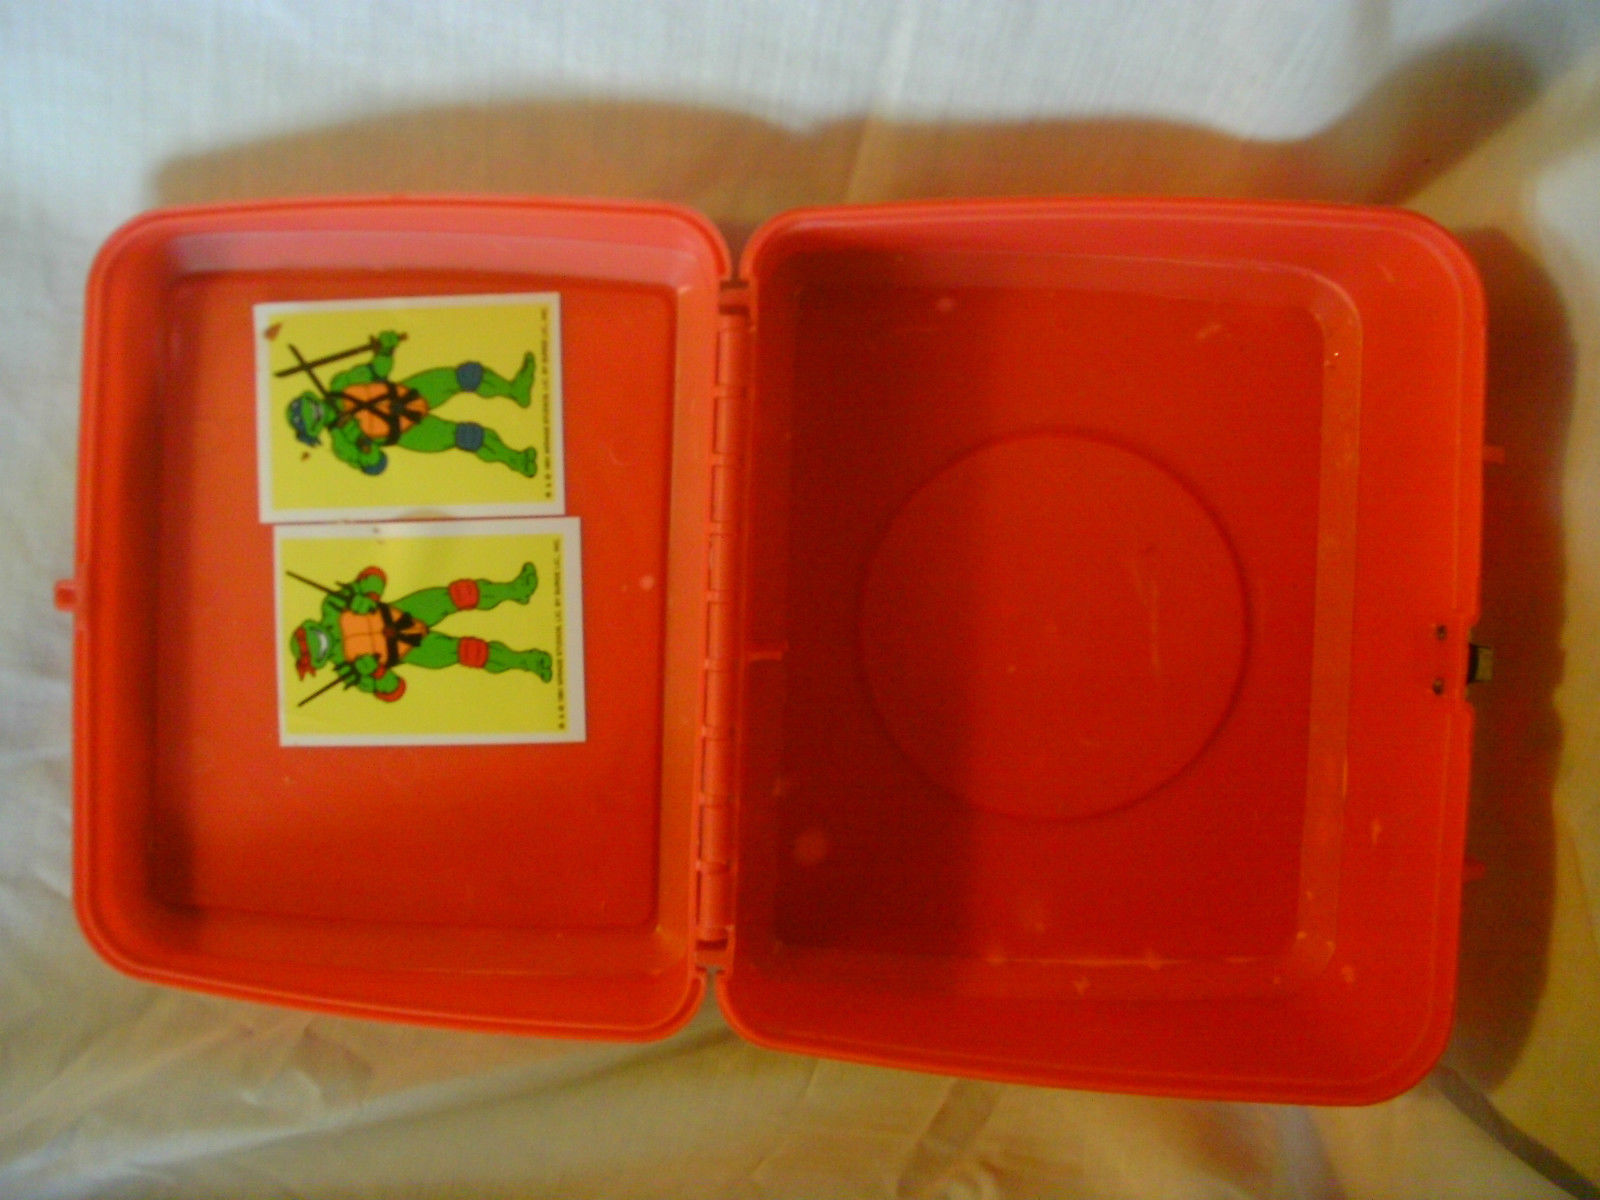 Disney's Dick Tracy Lunchbox by Aladdin image 3